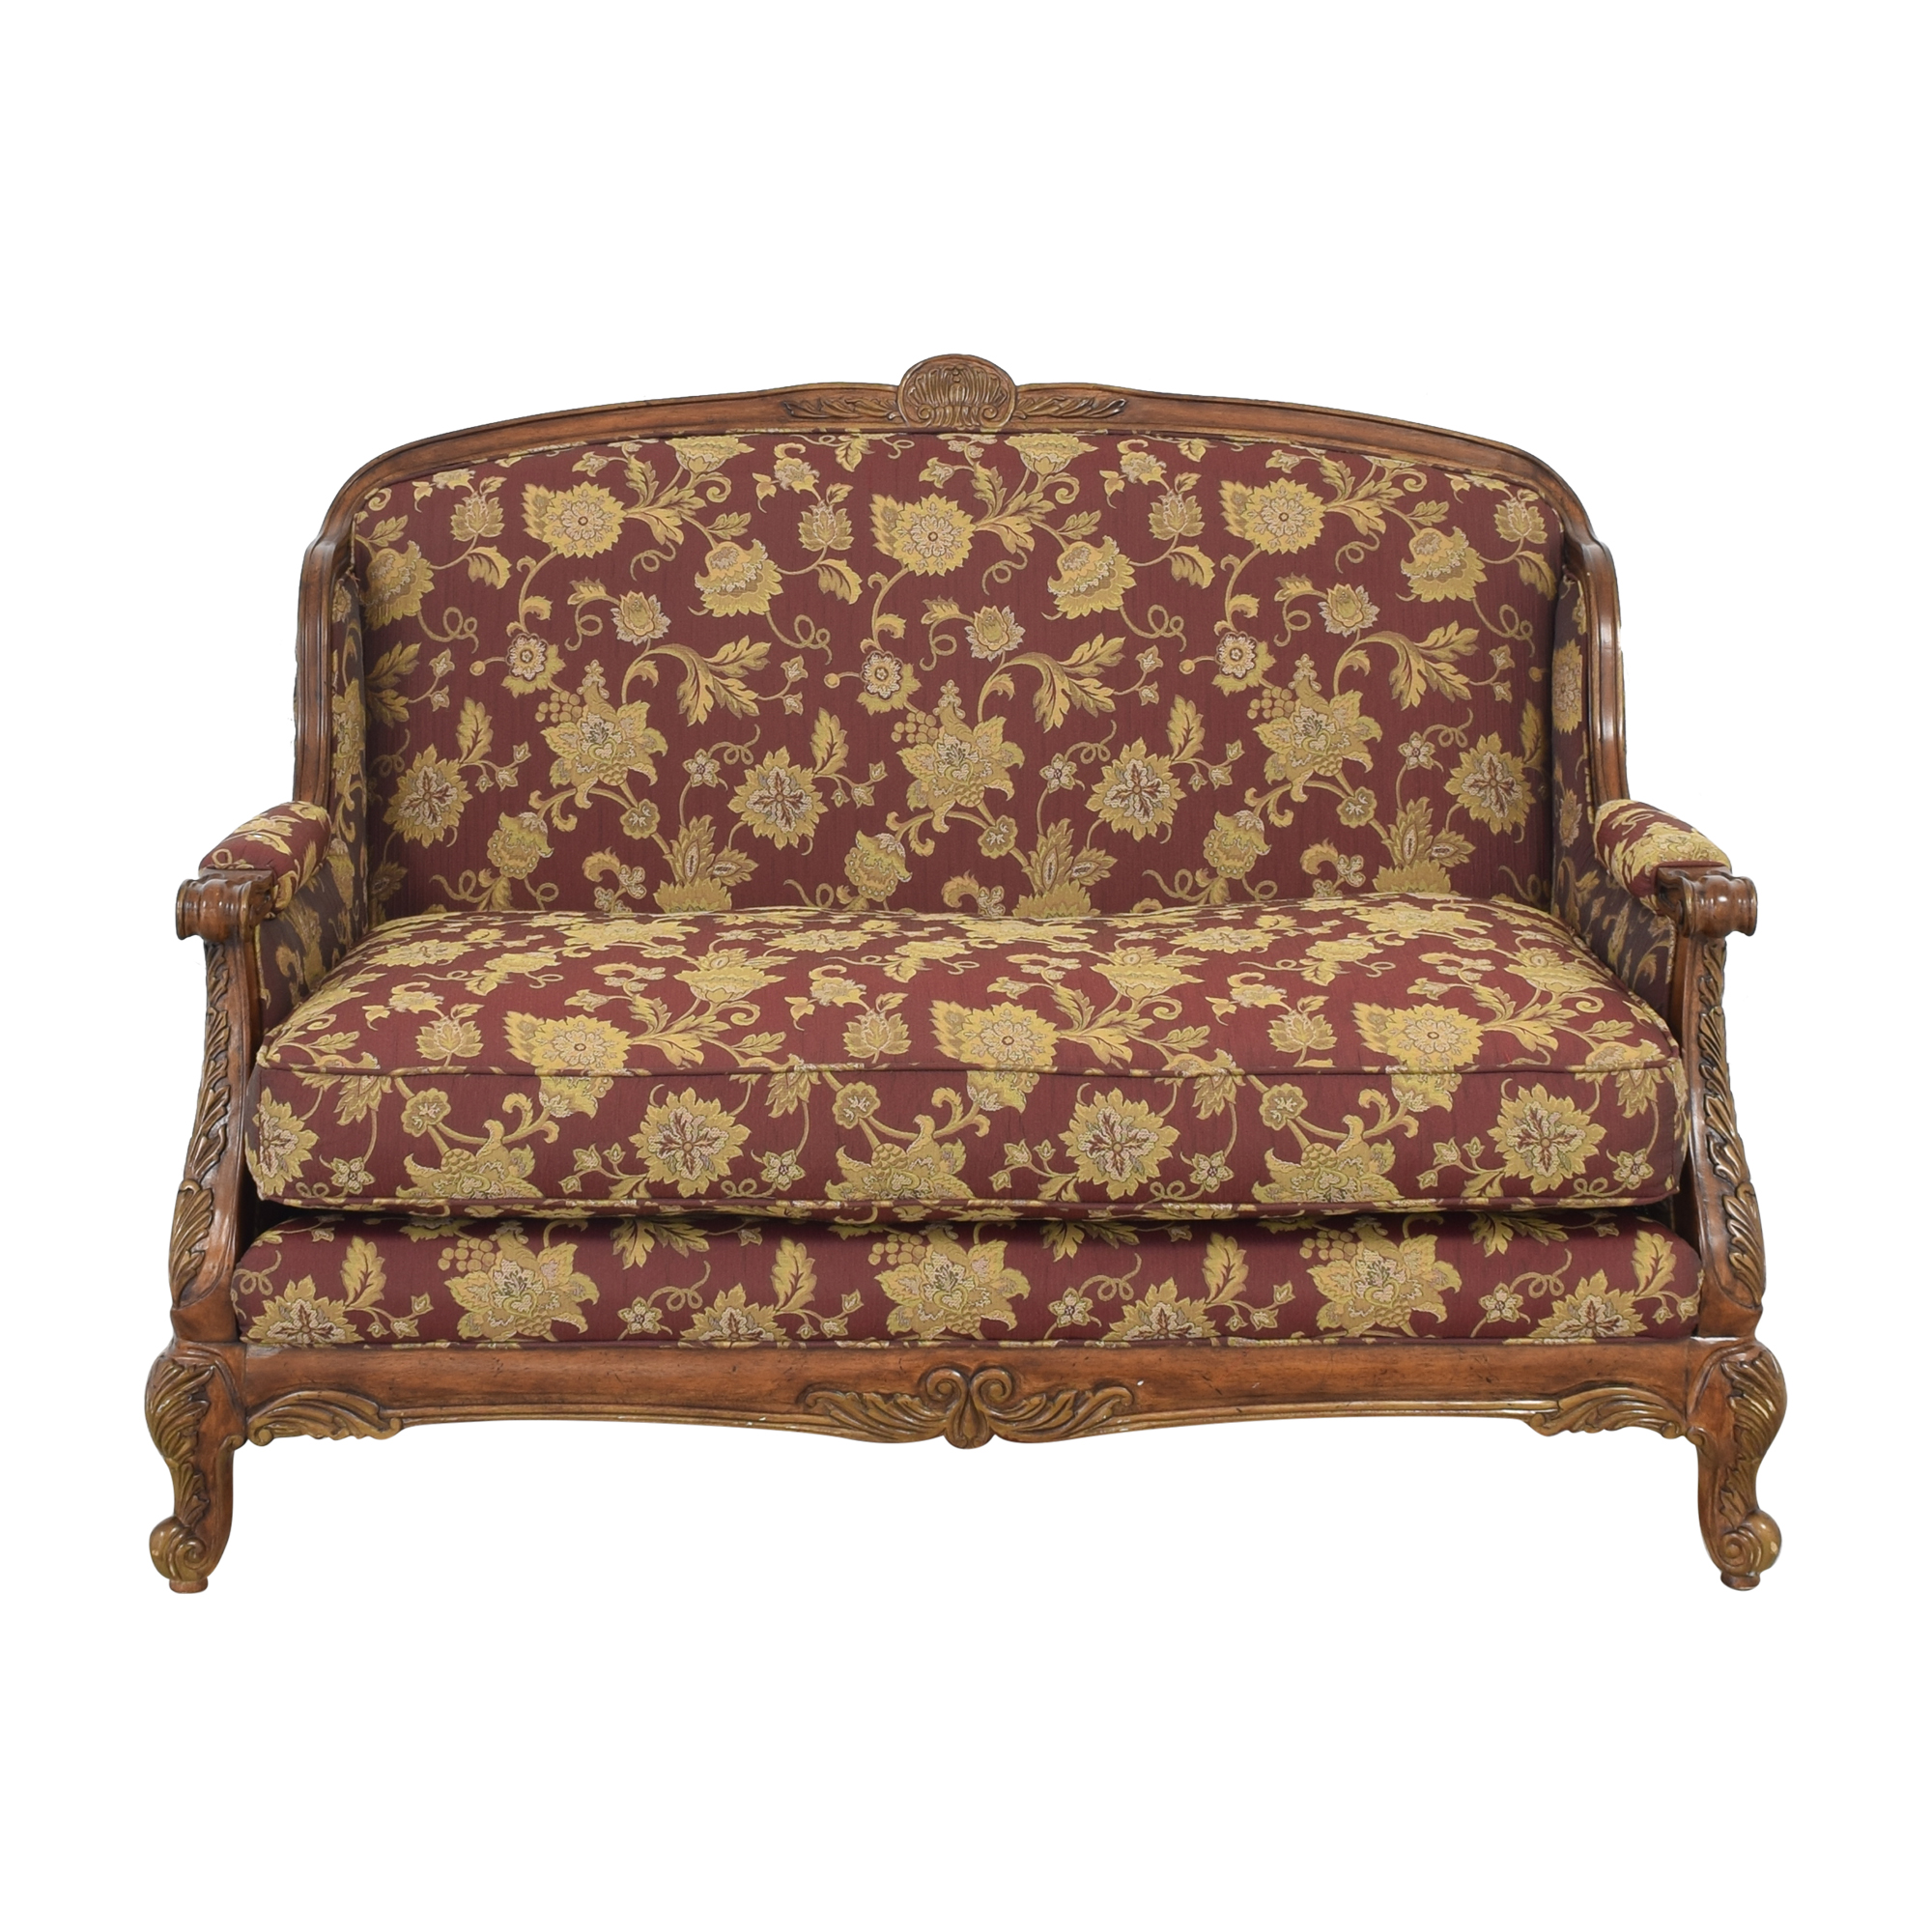 Universal Furniture Universal Furniture Settee red & brown